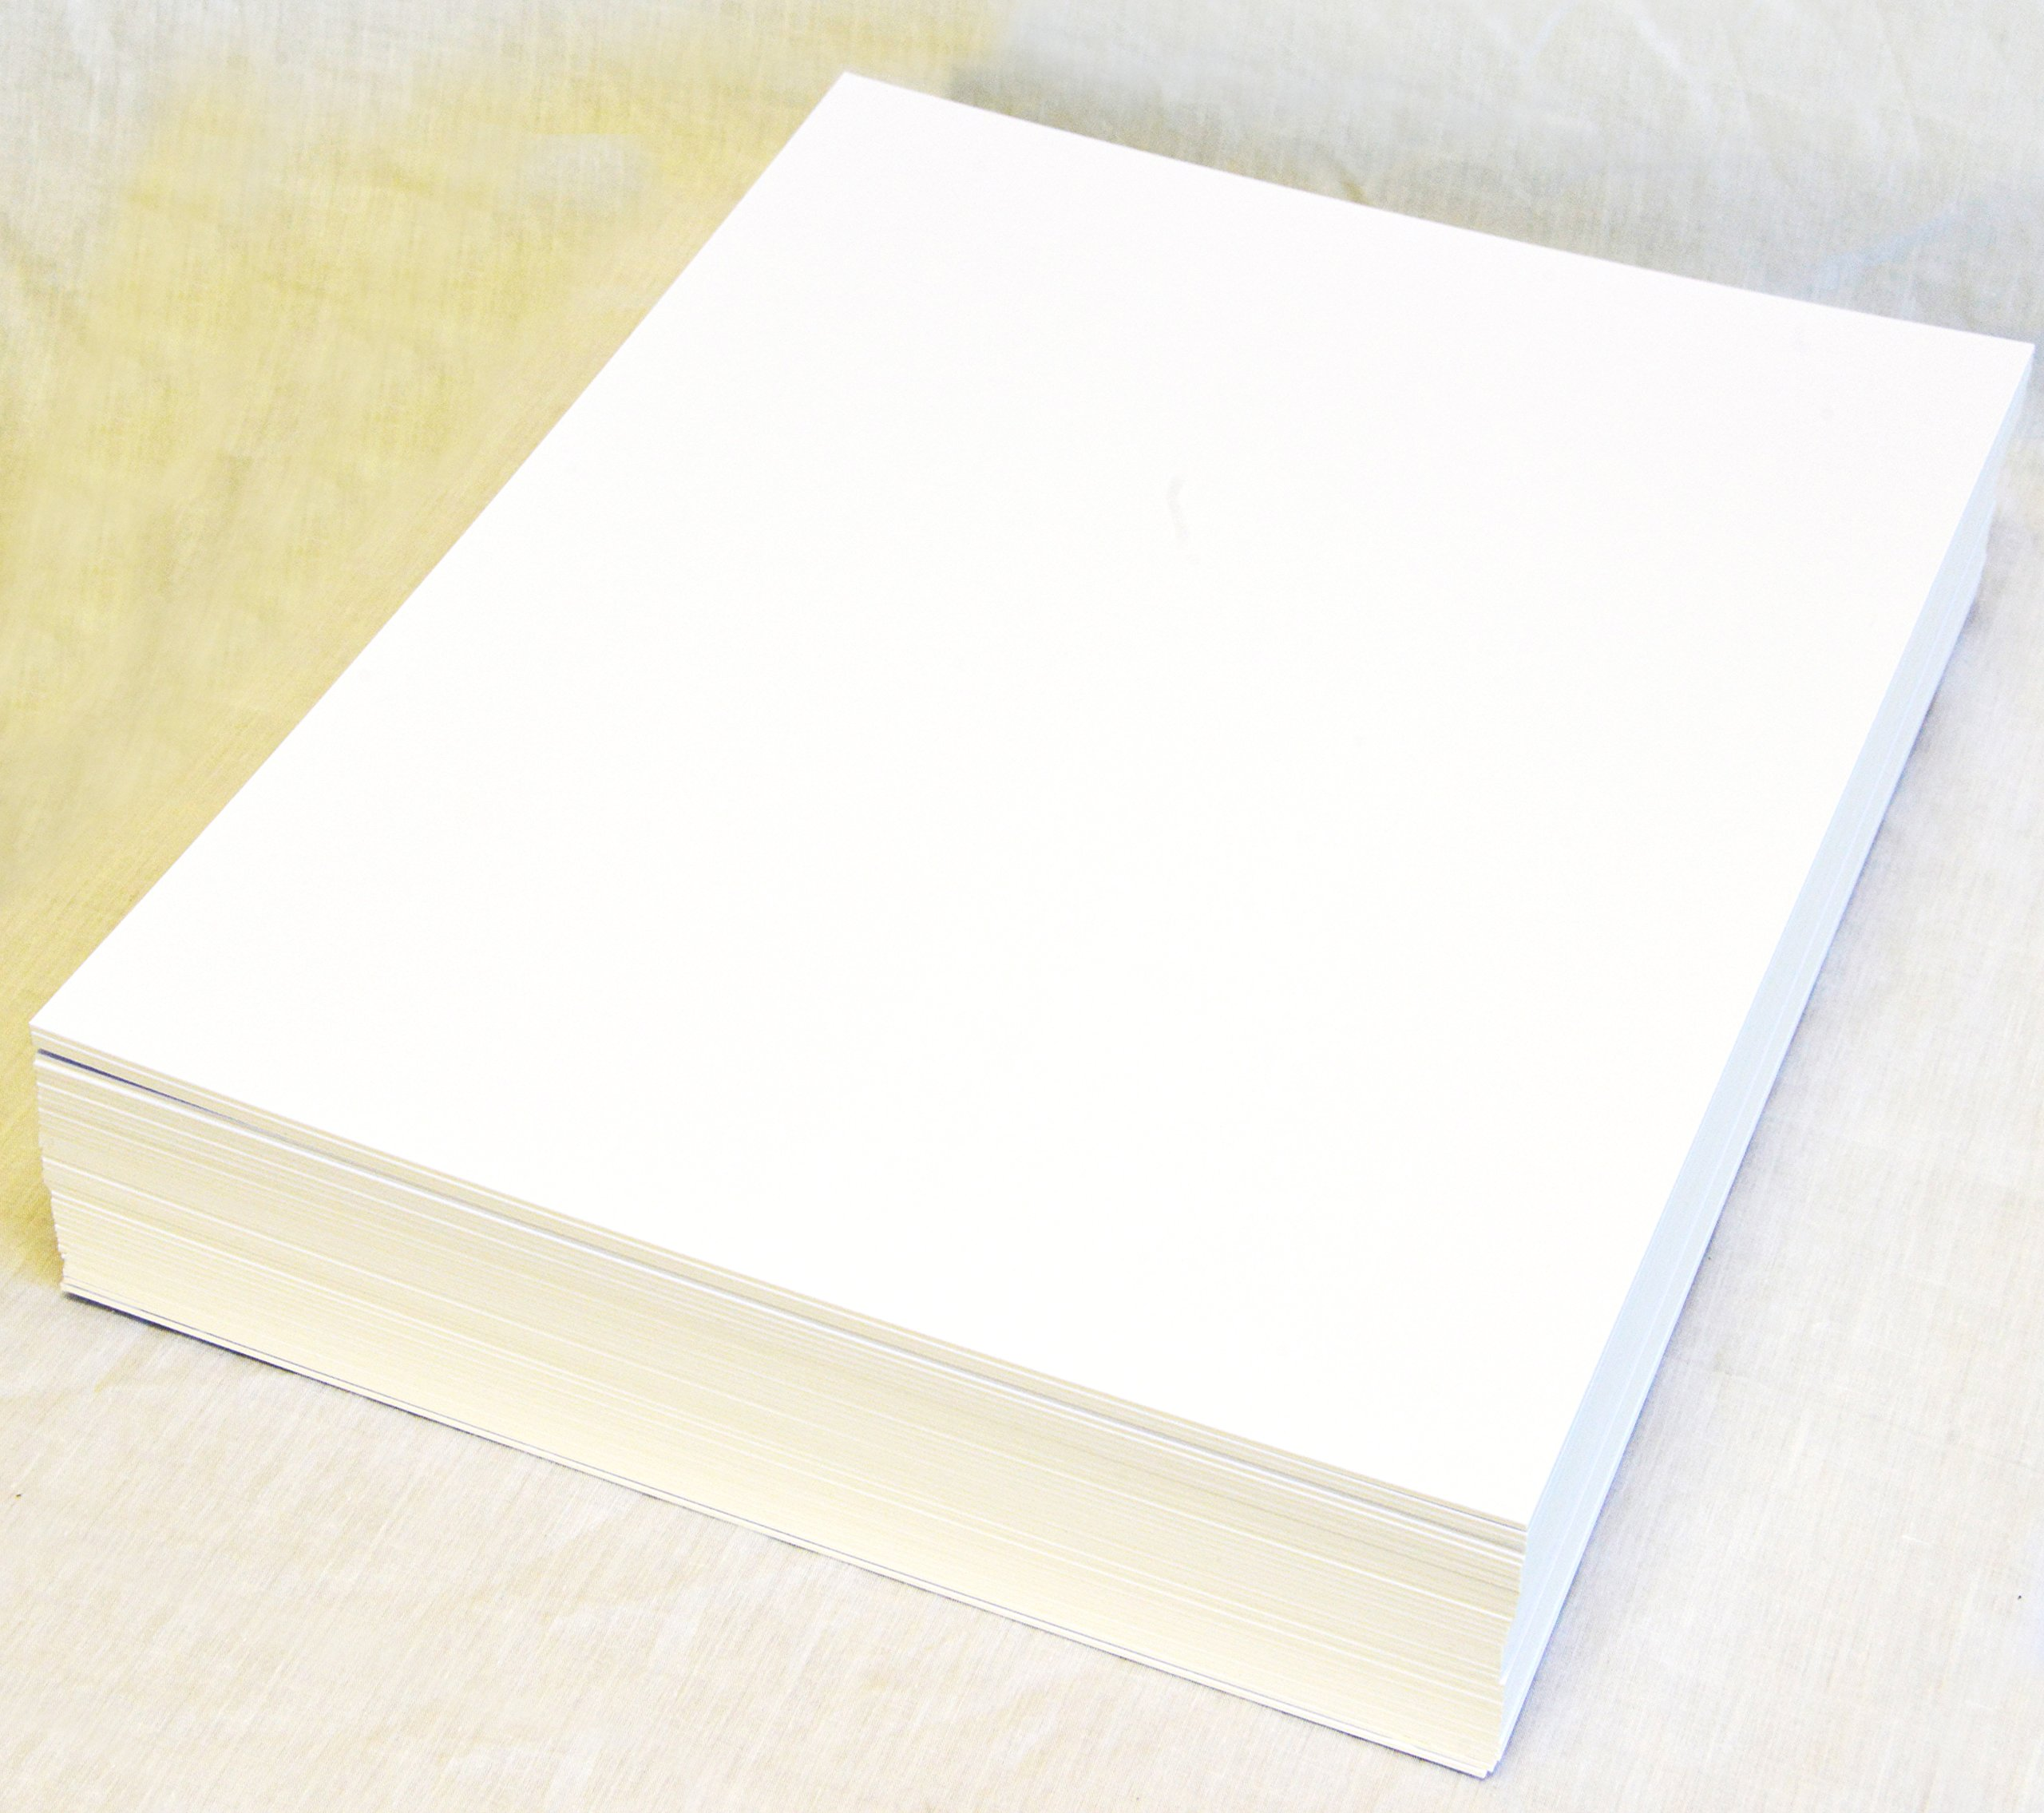 topseller100, Pack of 30 sheets 30x42 UNCUT matboard / mat boards (White)